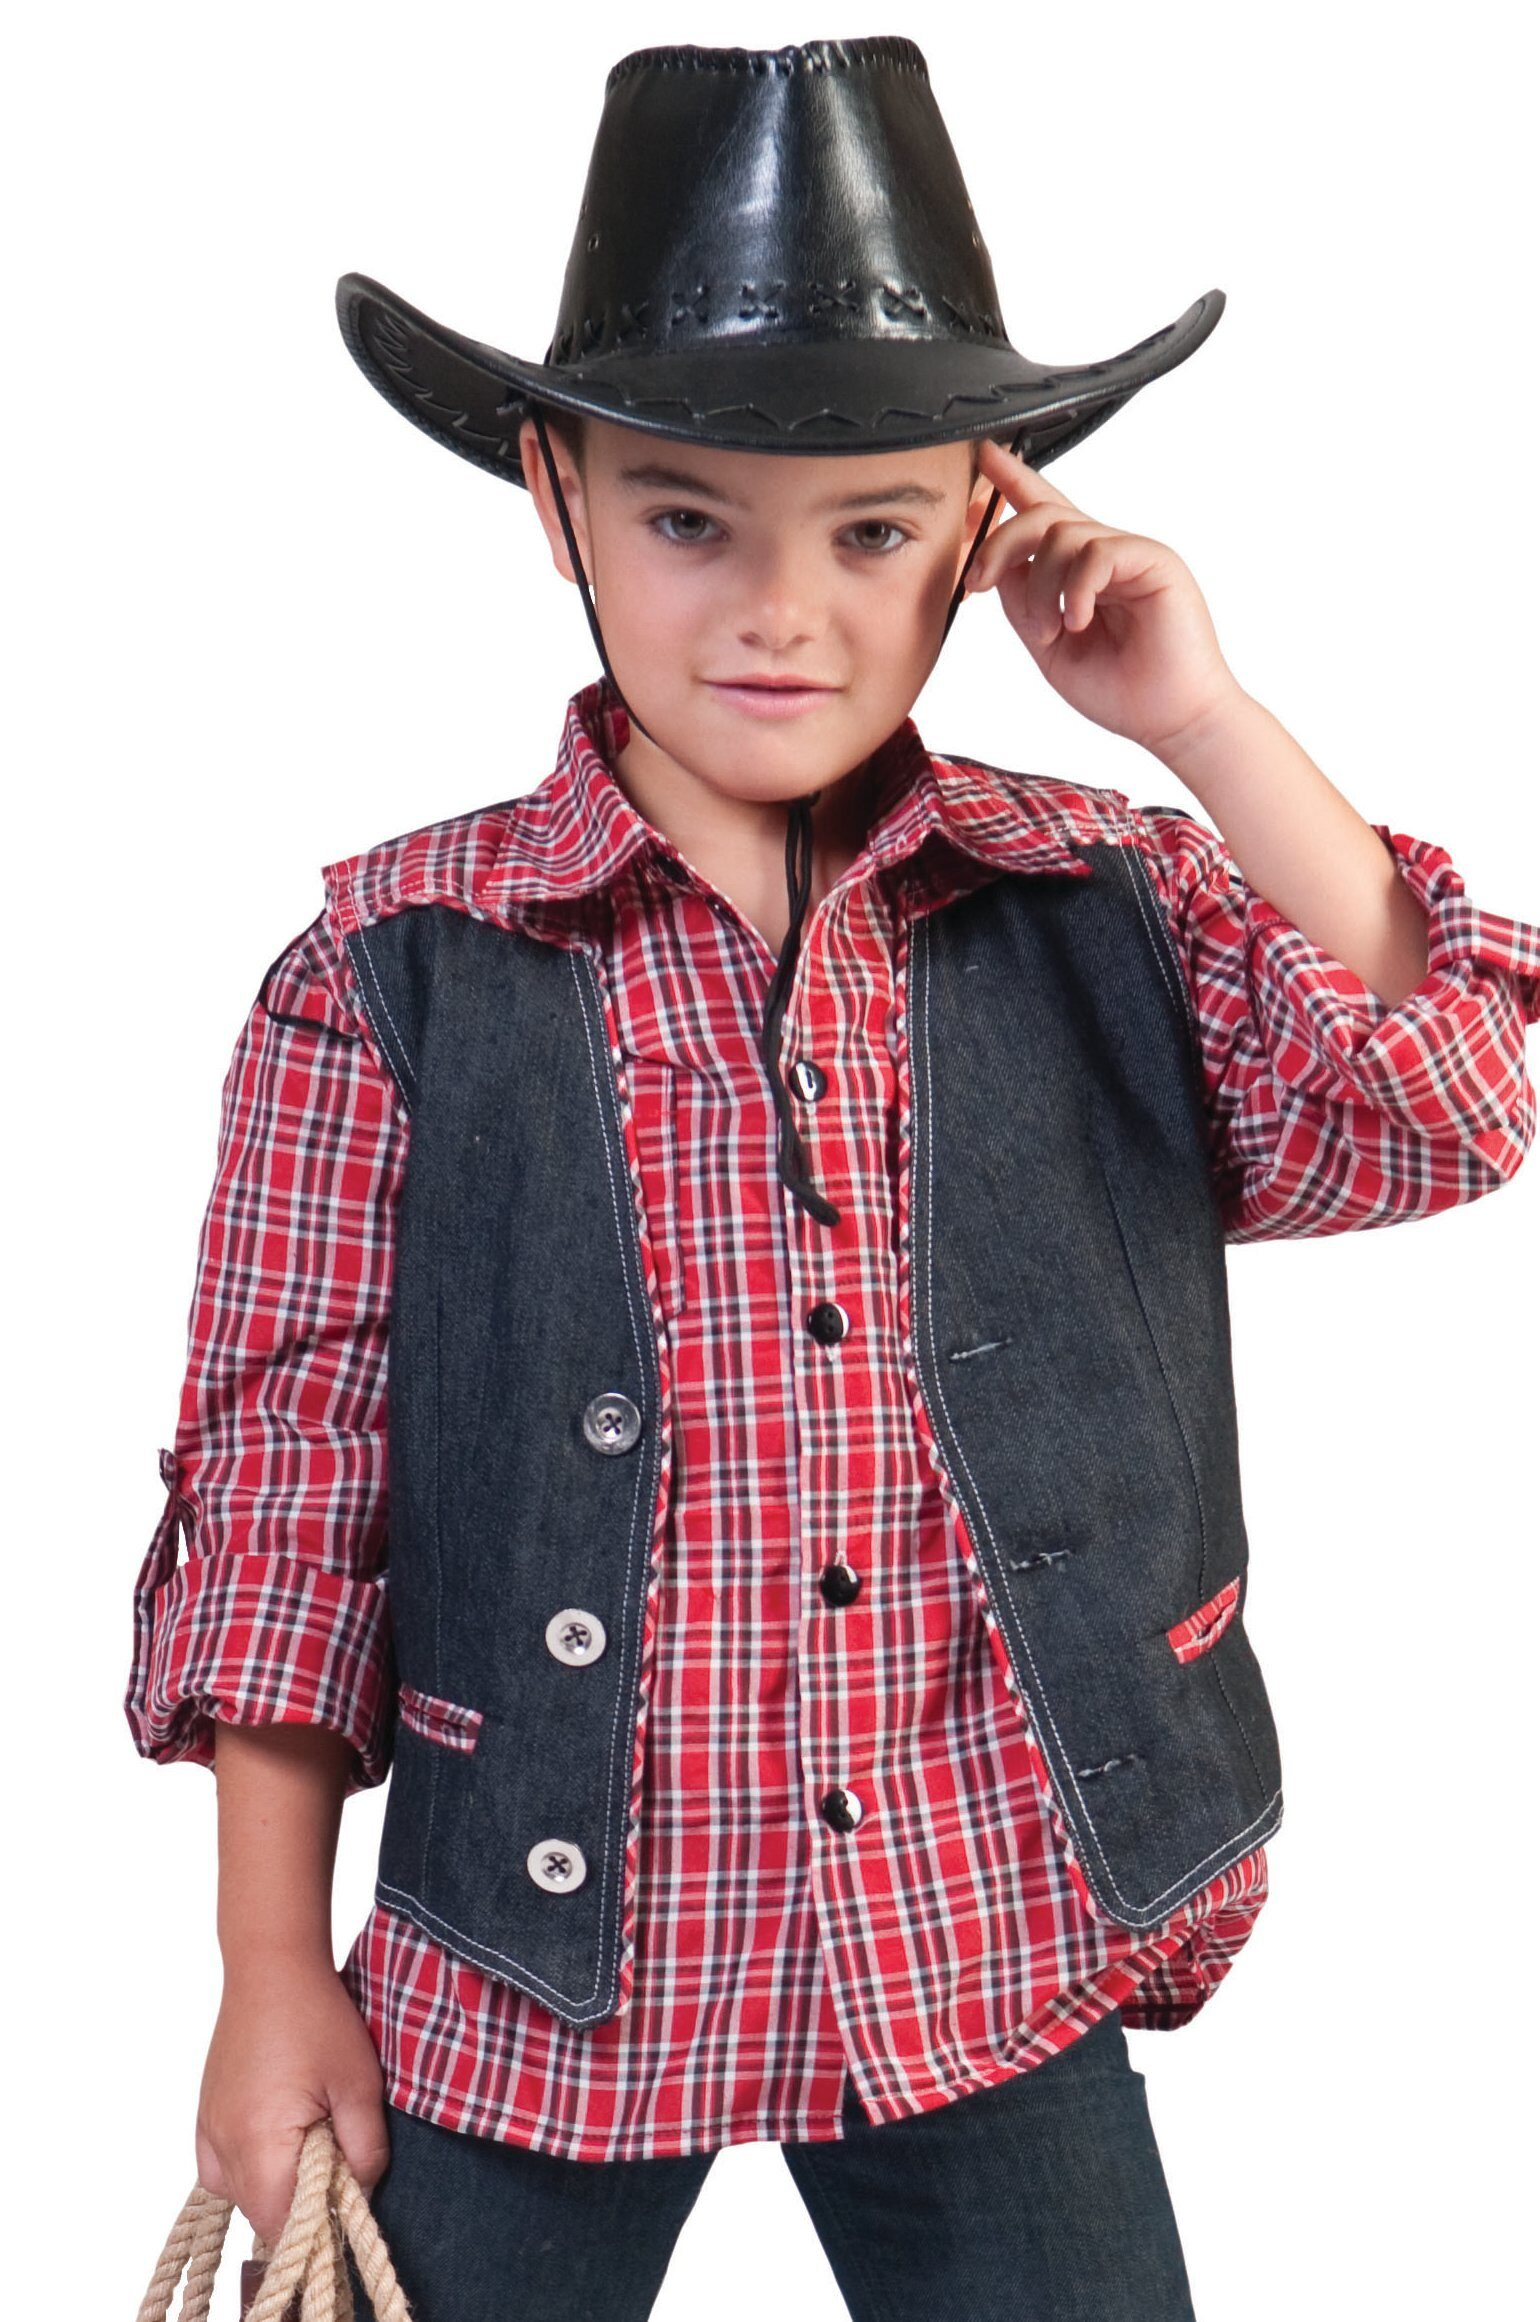 Boys Cowboy Vest Kids Costume  sc 1 st  Mr. Costumes & Boys Cowboy Vest Kids Costume - Mr. Costumes